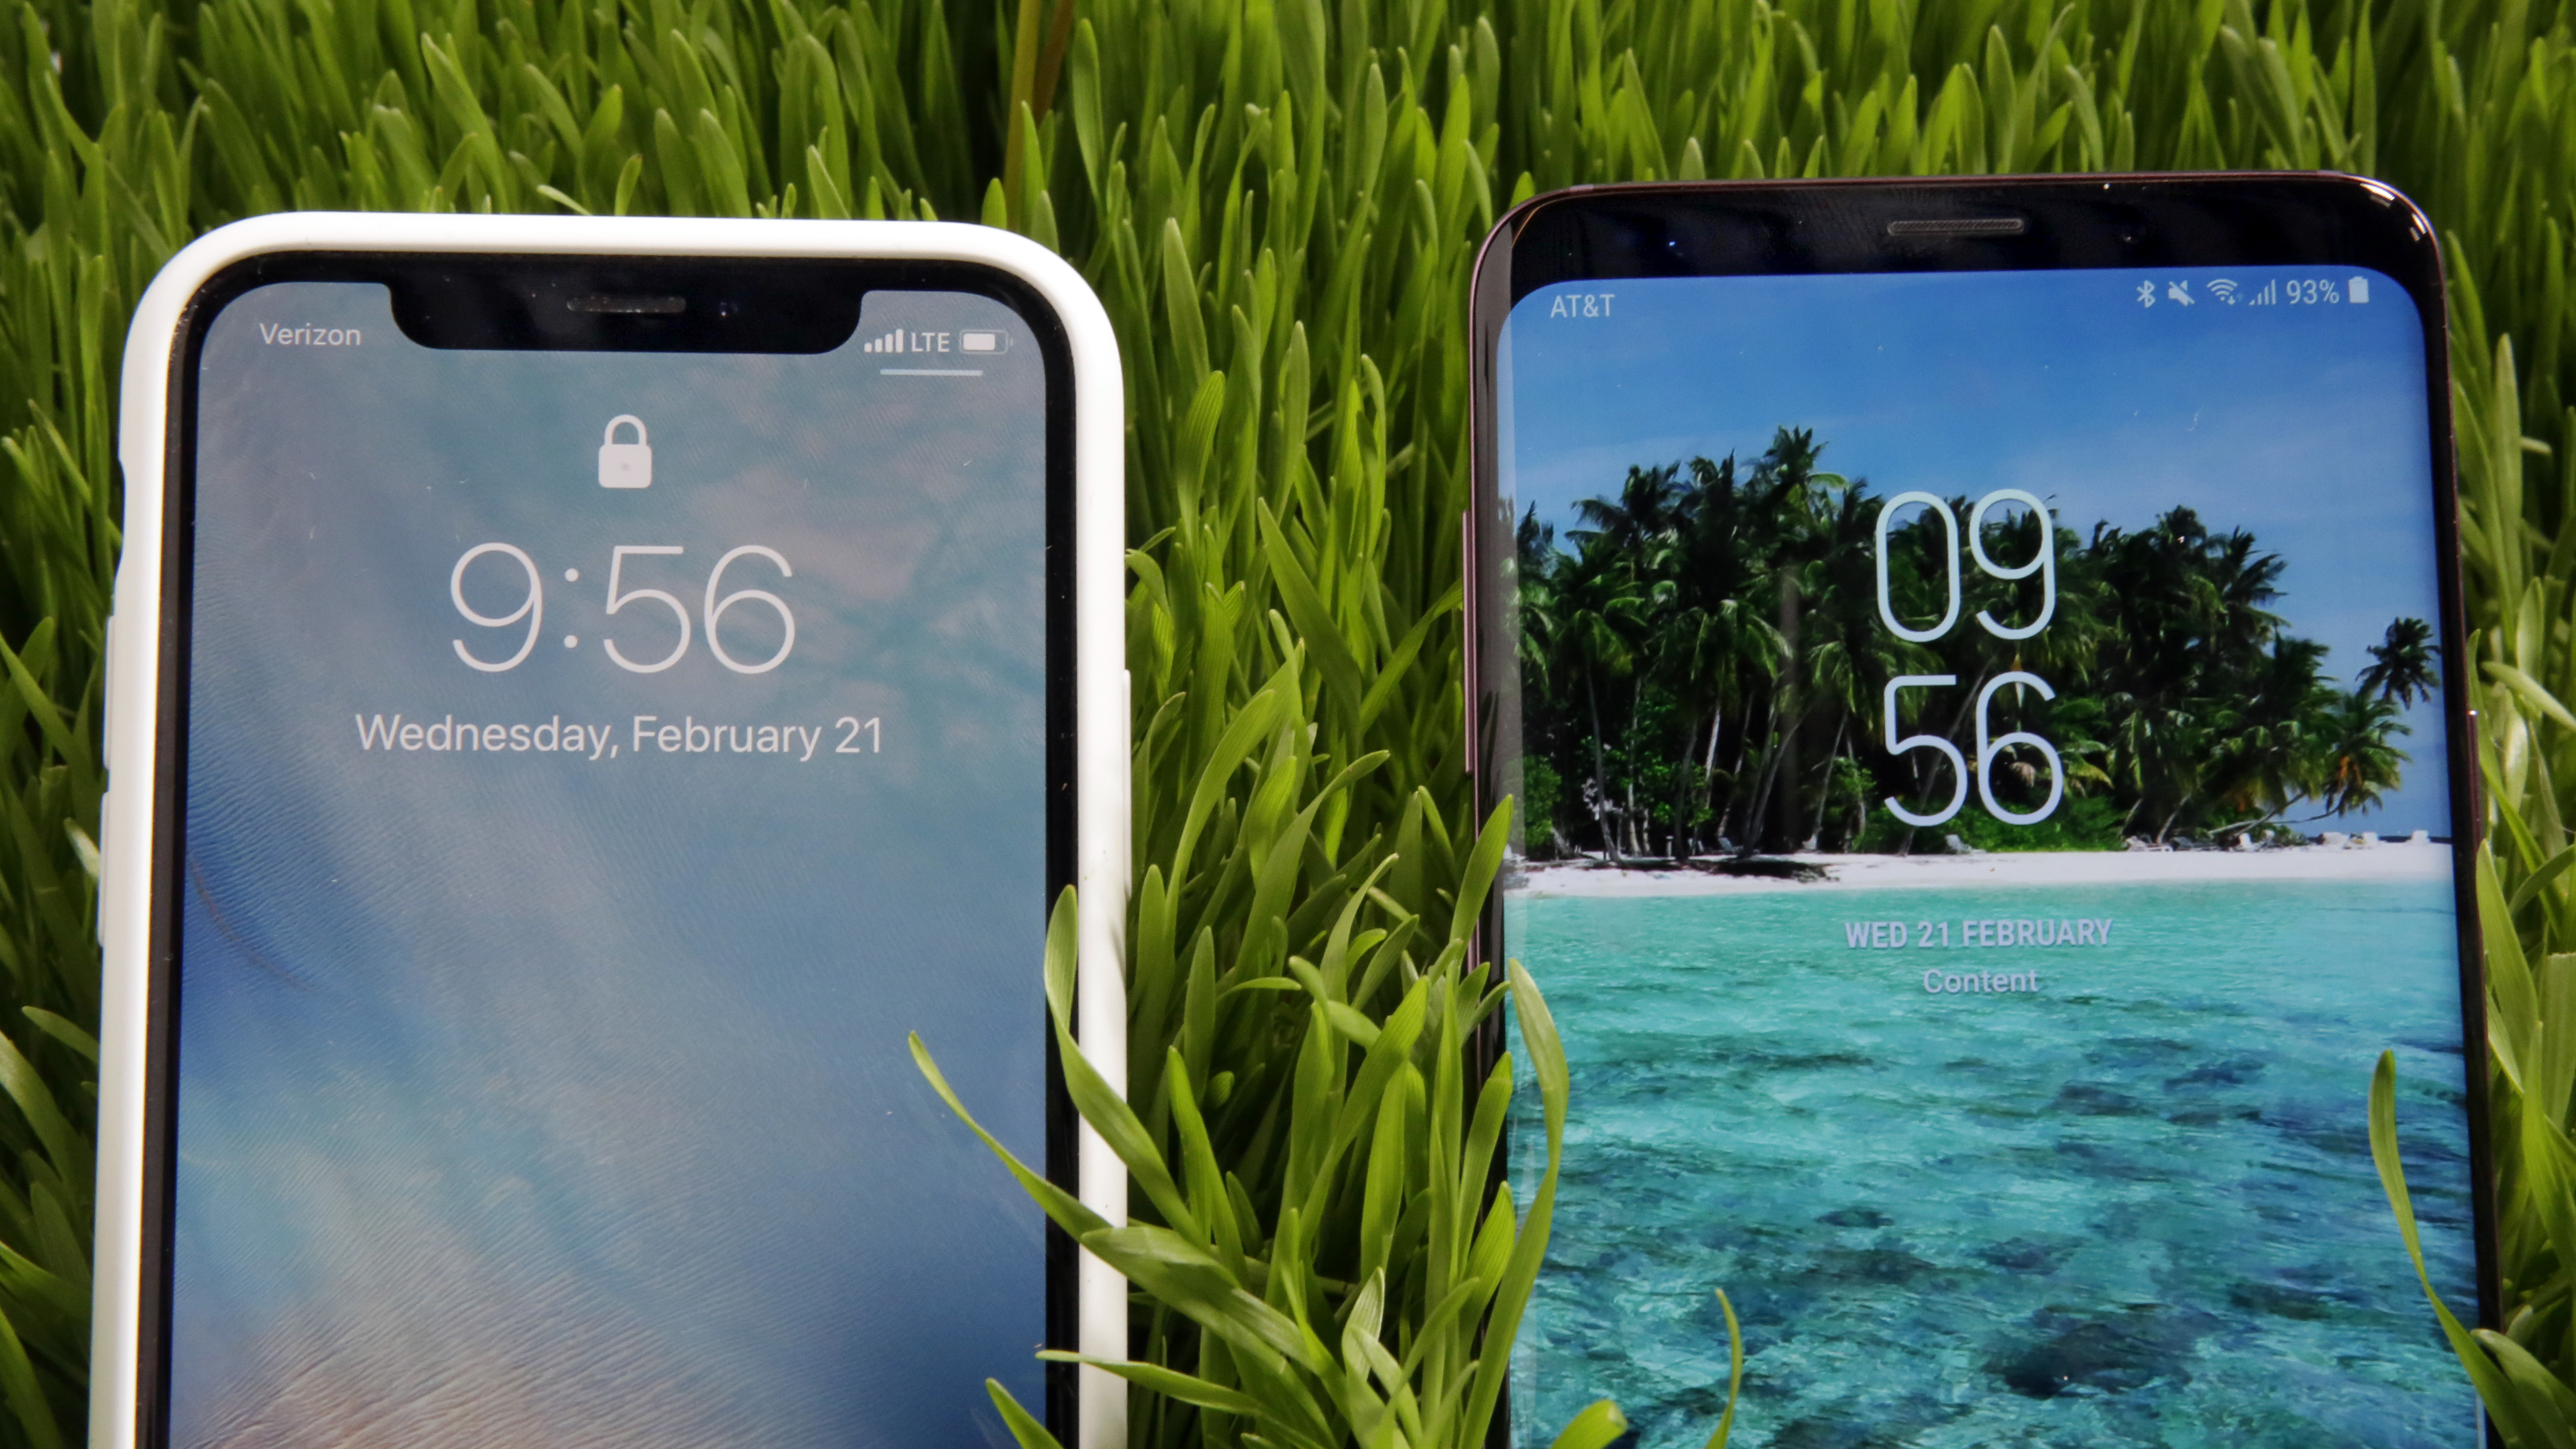 Iphone X Versus Samsung Galaxy S9 Comparison What S Really The